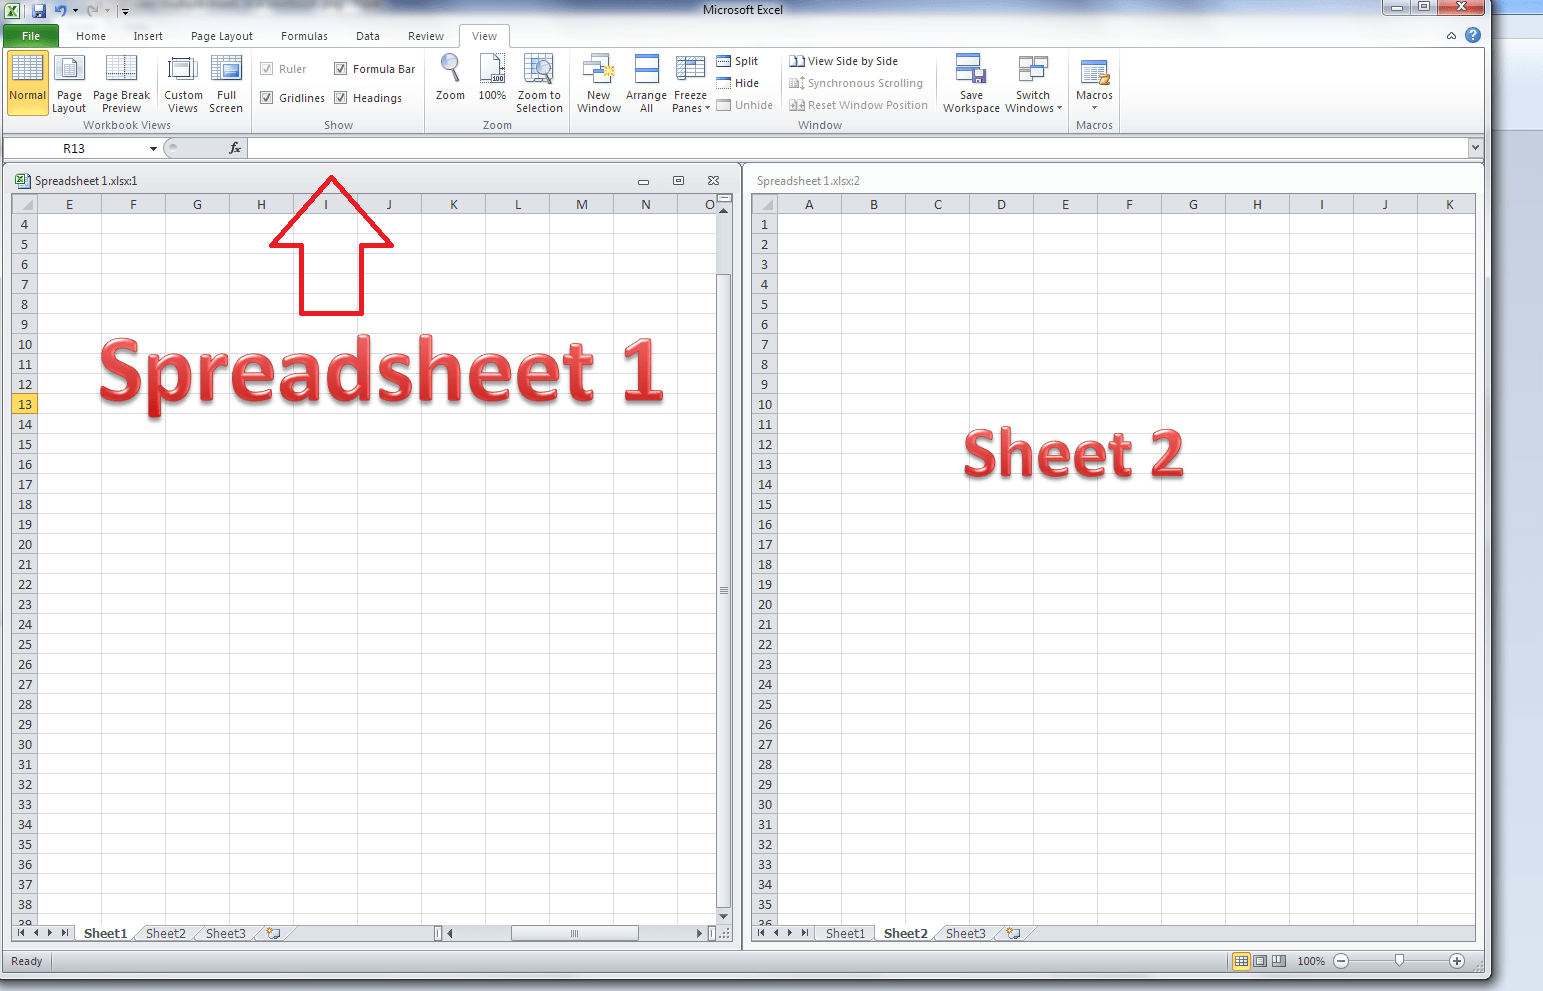 How Do I View Two Sheets Of An Excel Workbook At The Same